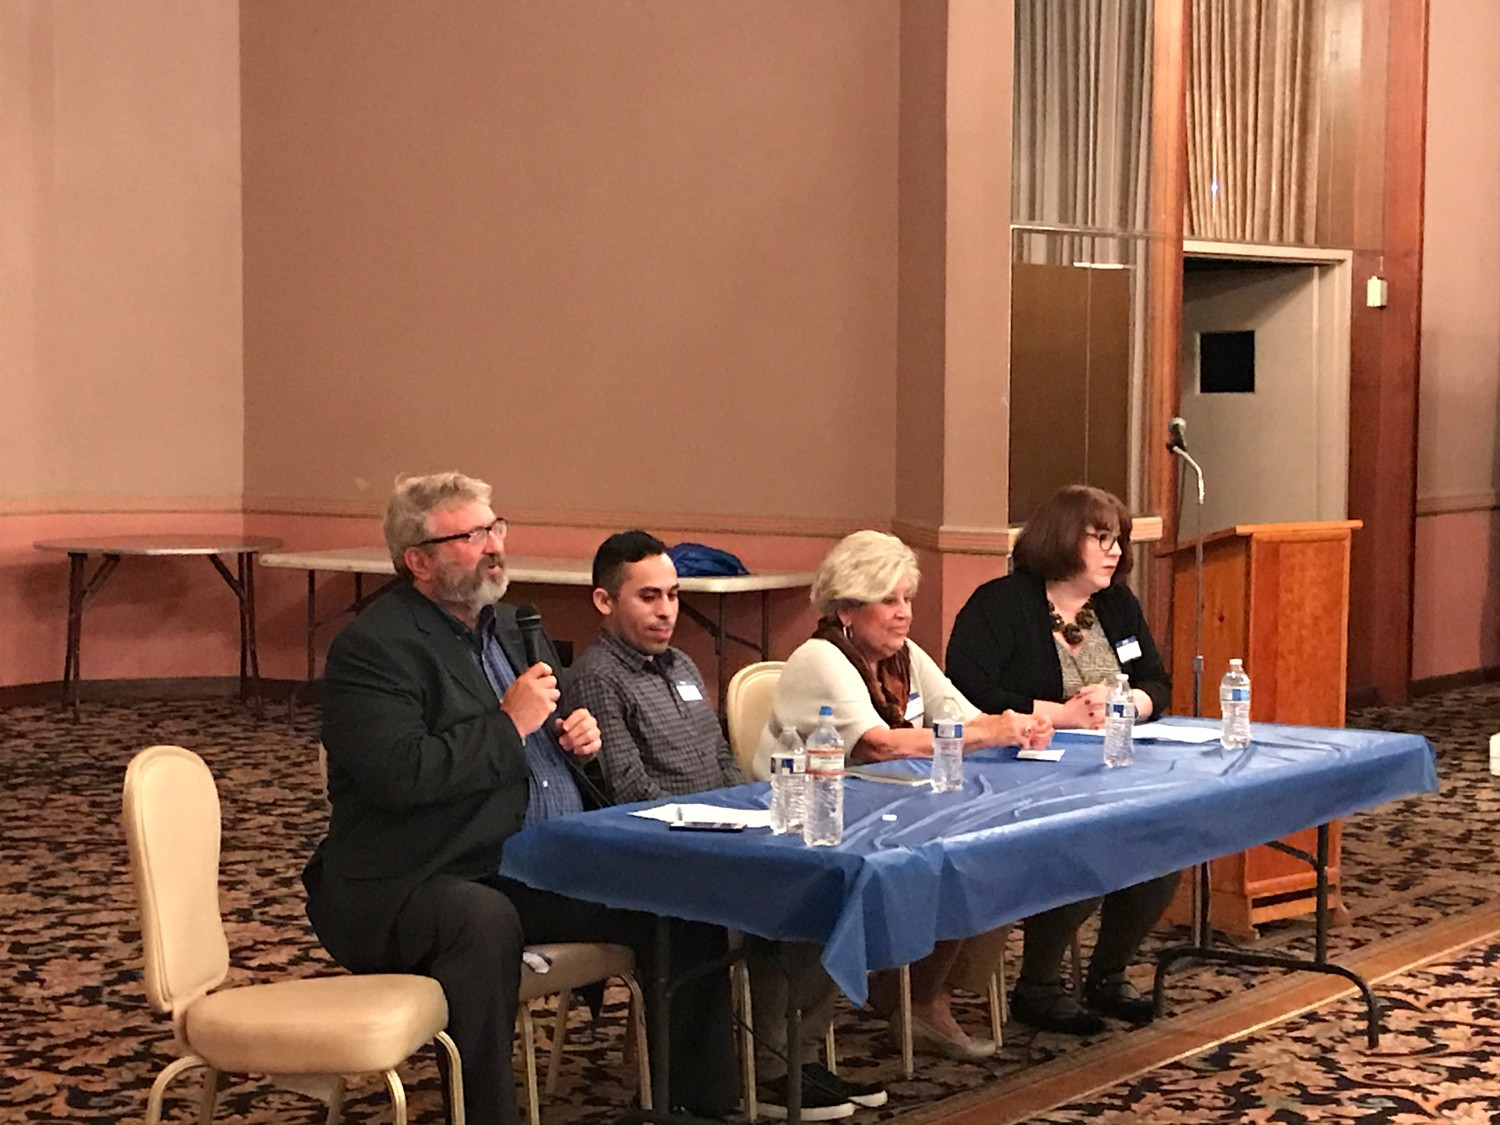 Patrick Young, Osman Canales, and Margarita Grasing spoke at a panel at Central Synagogue Beth Emeth. Liz Stack, right, moderated the discussion.